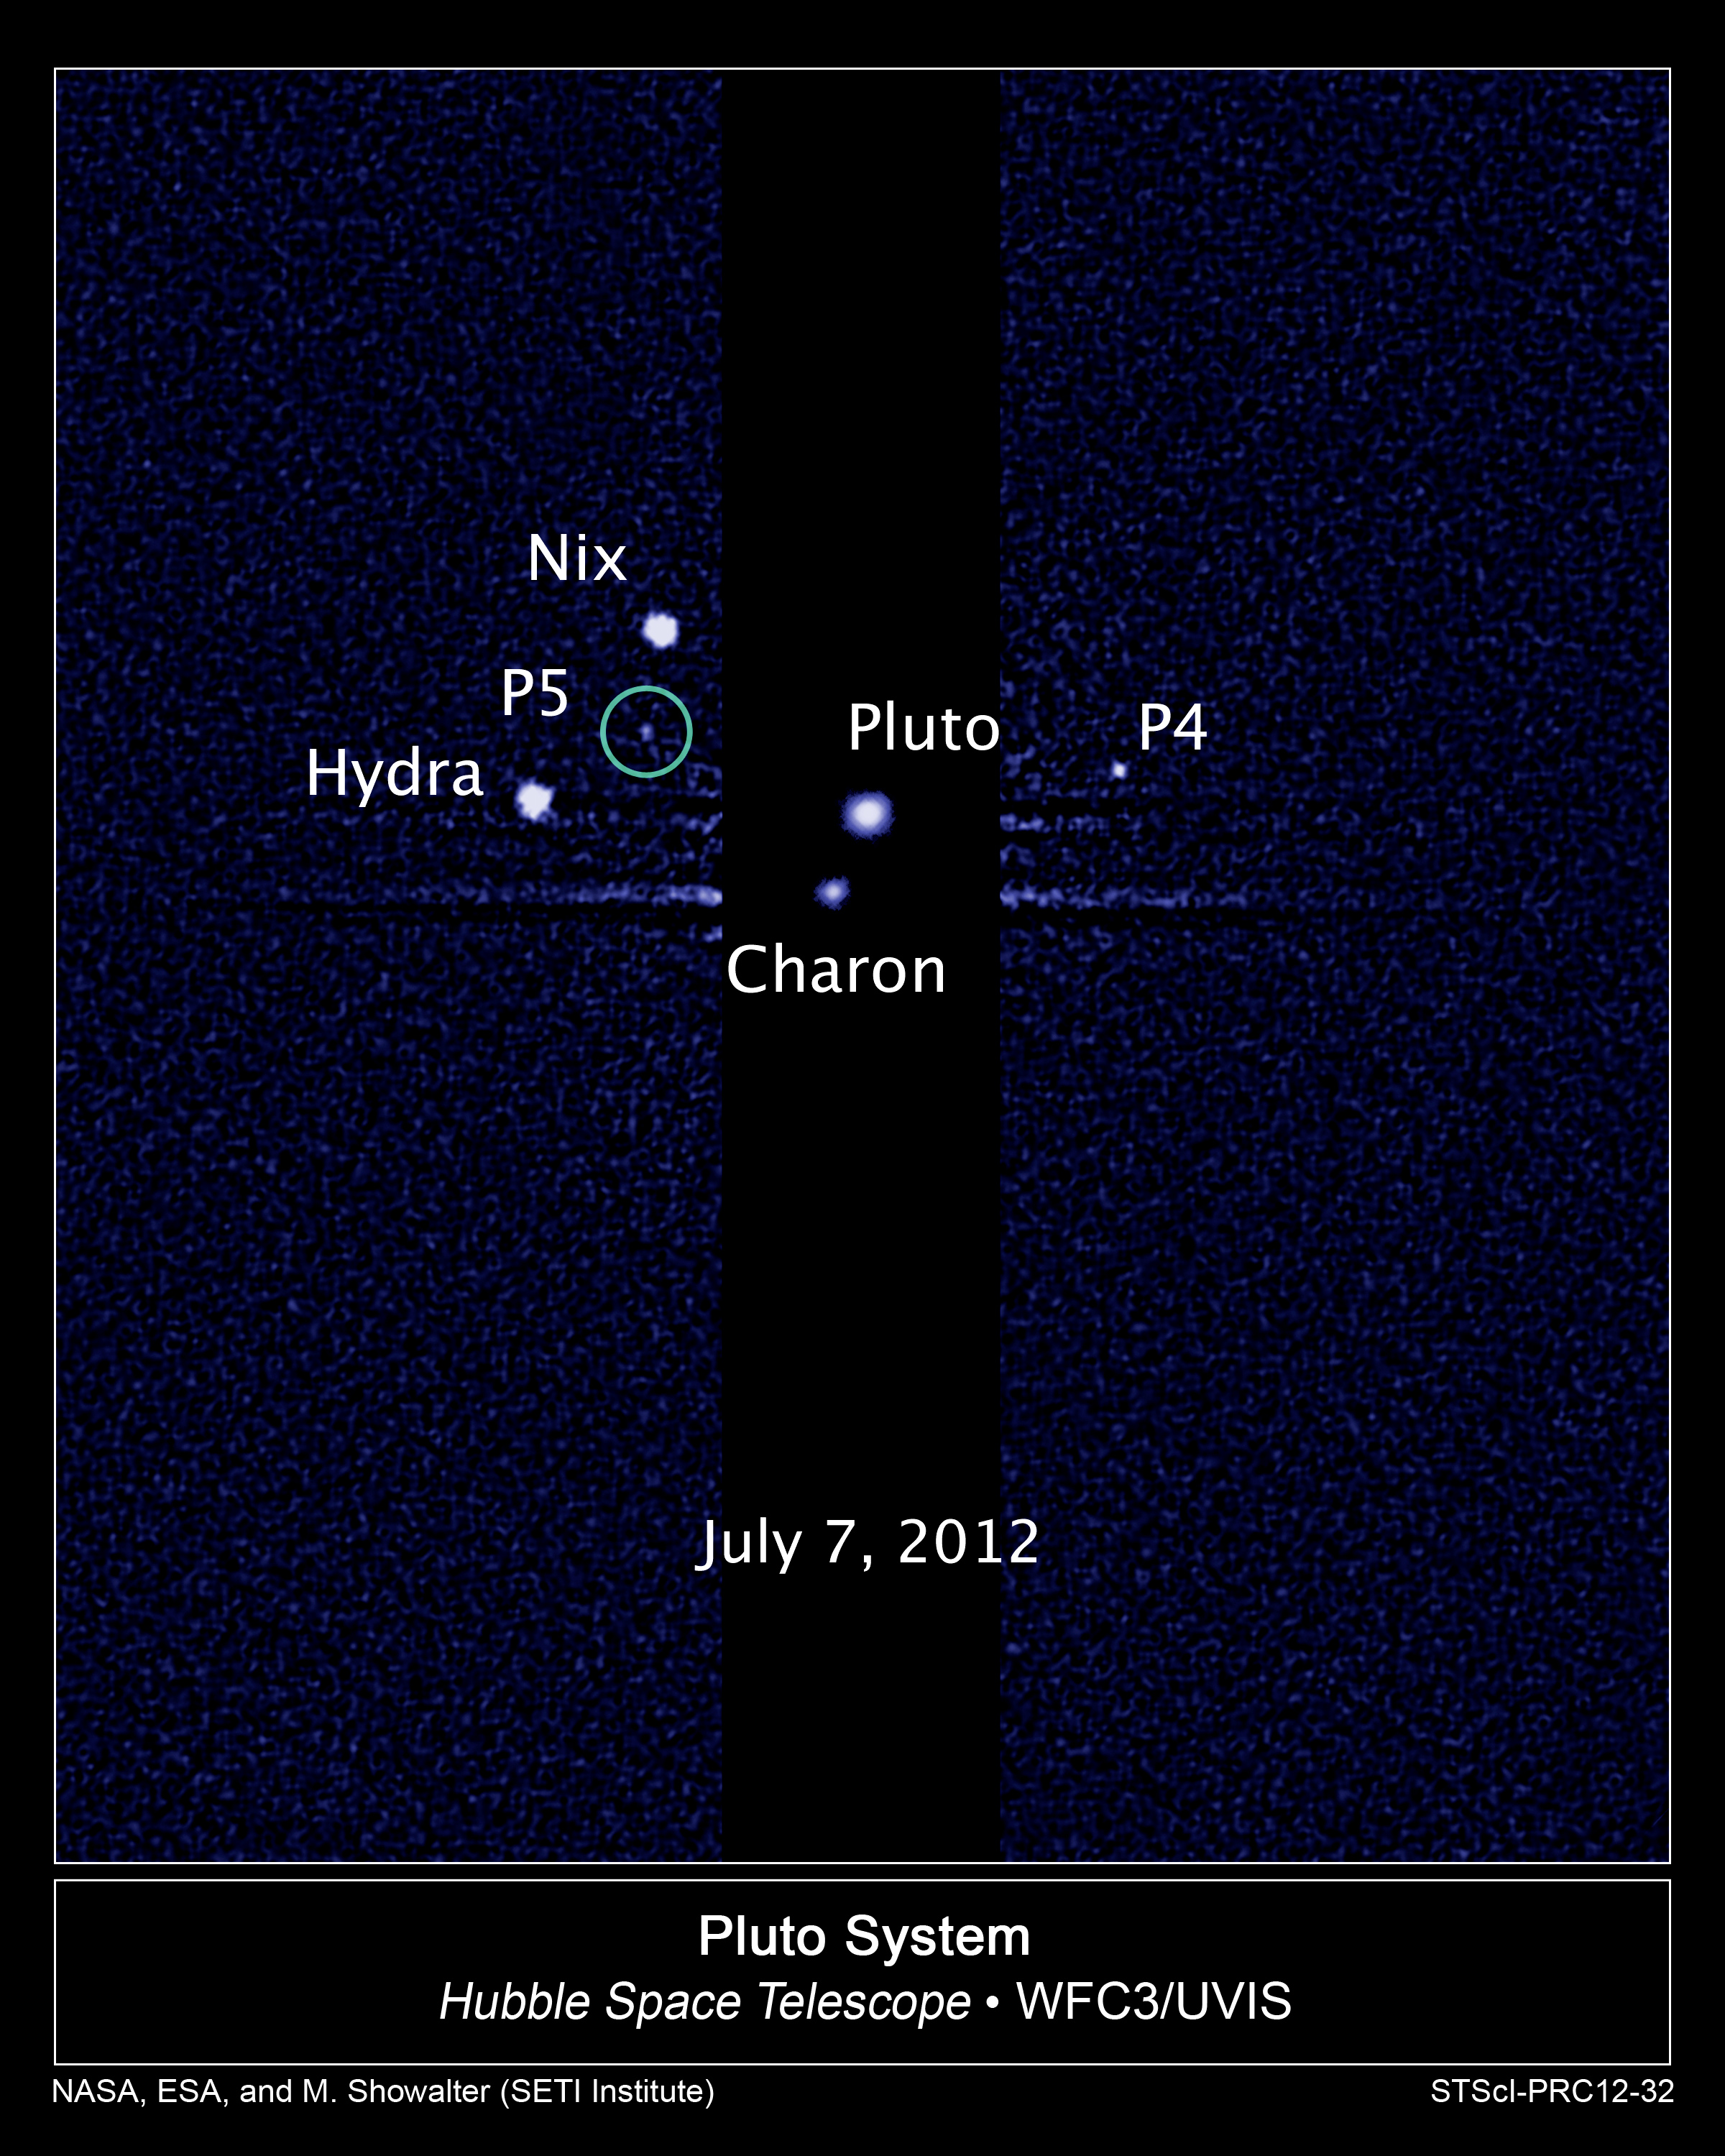 Pluto s moons two new moons get names for hellish characters